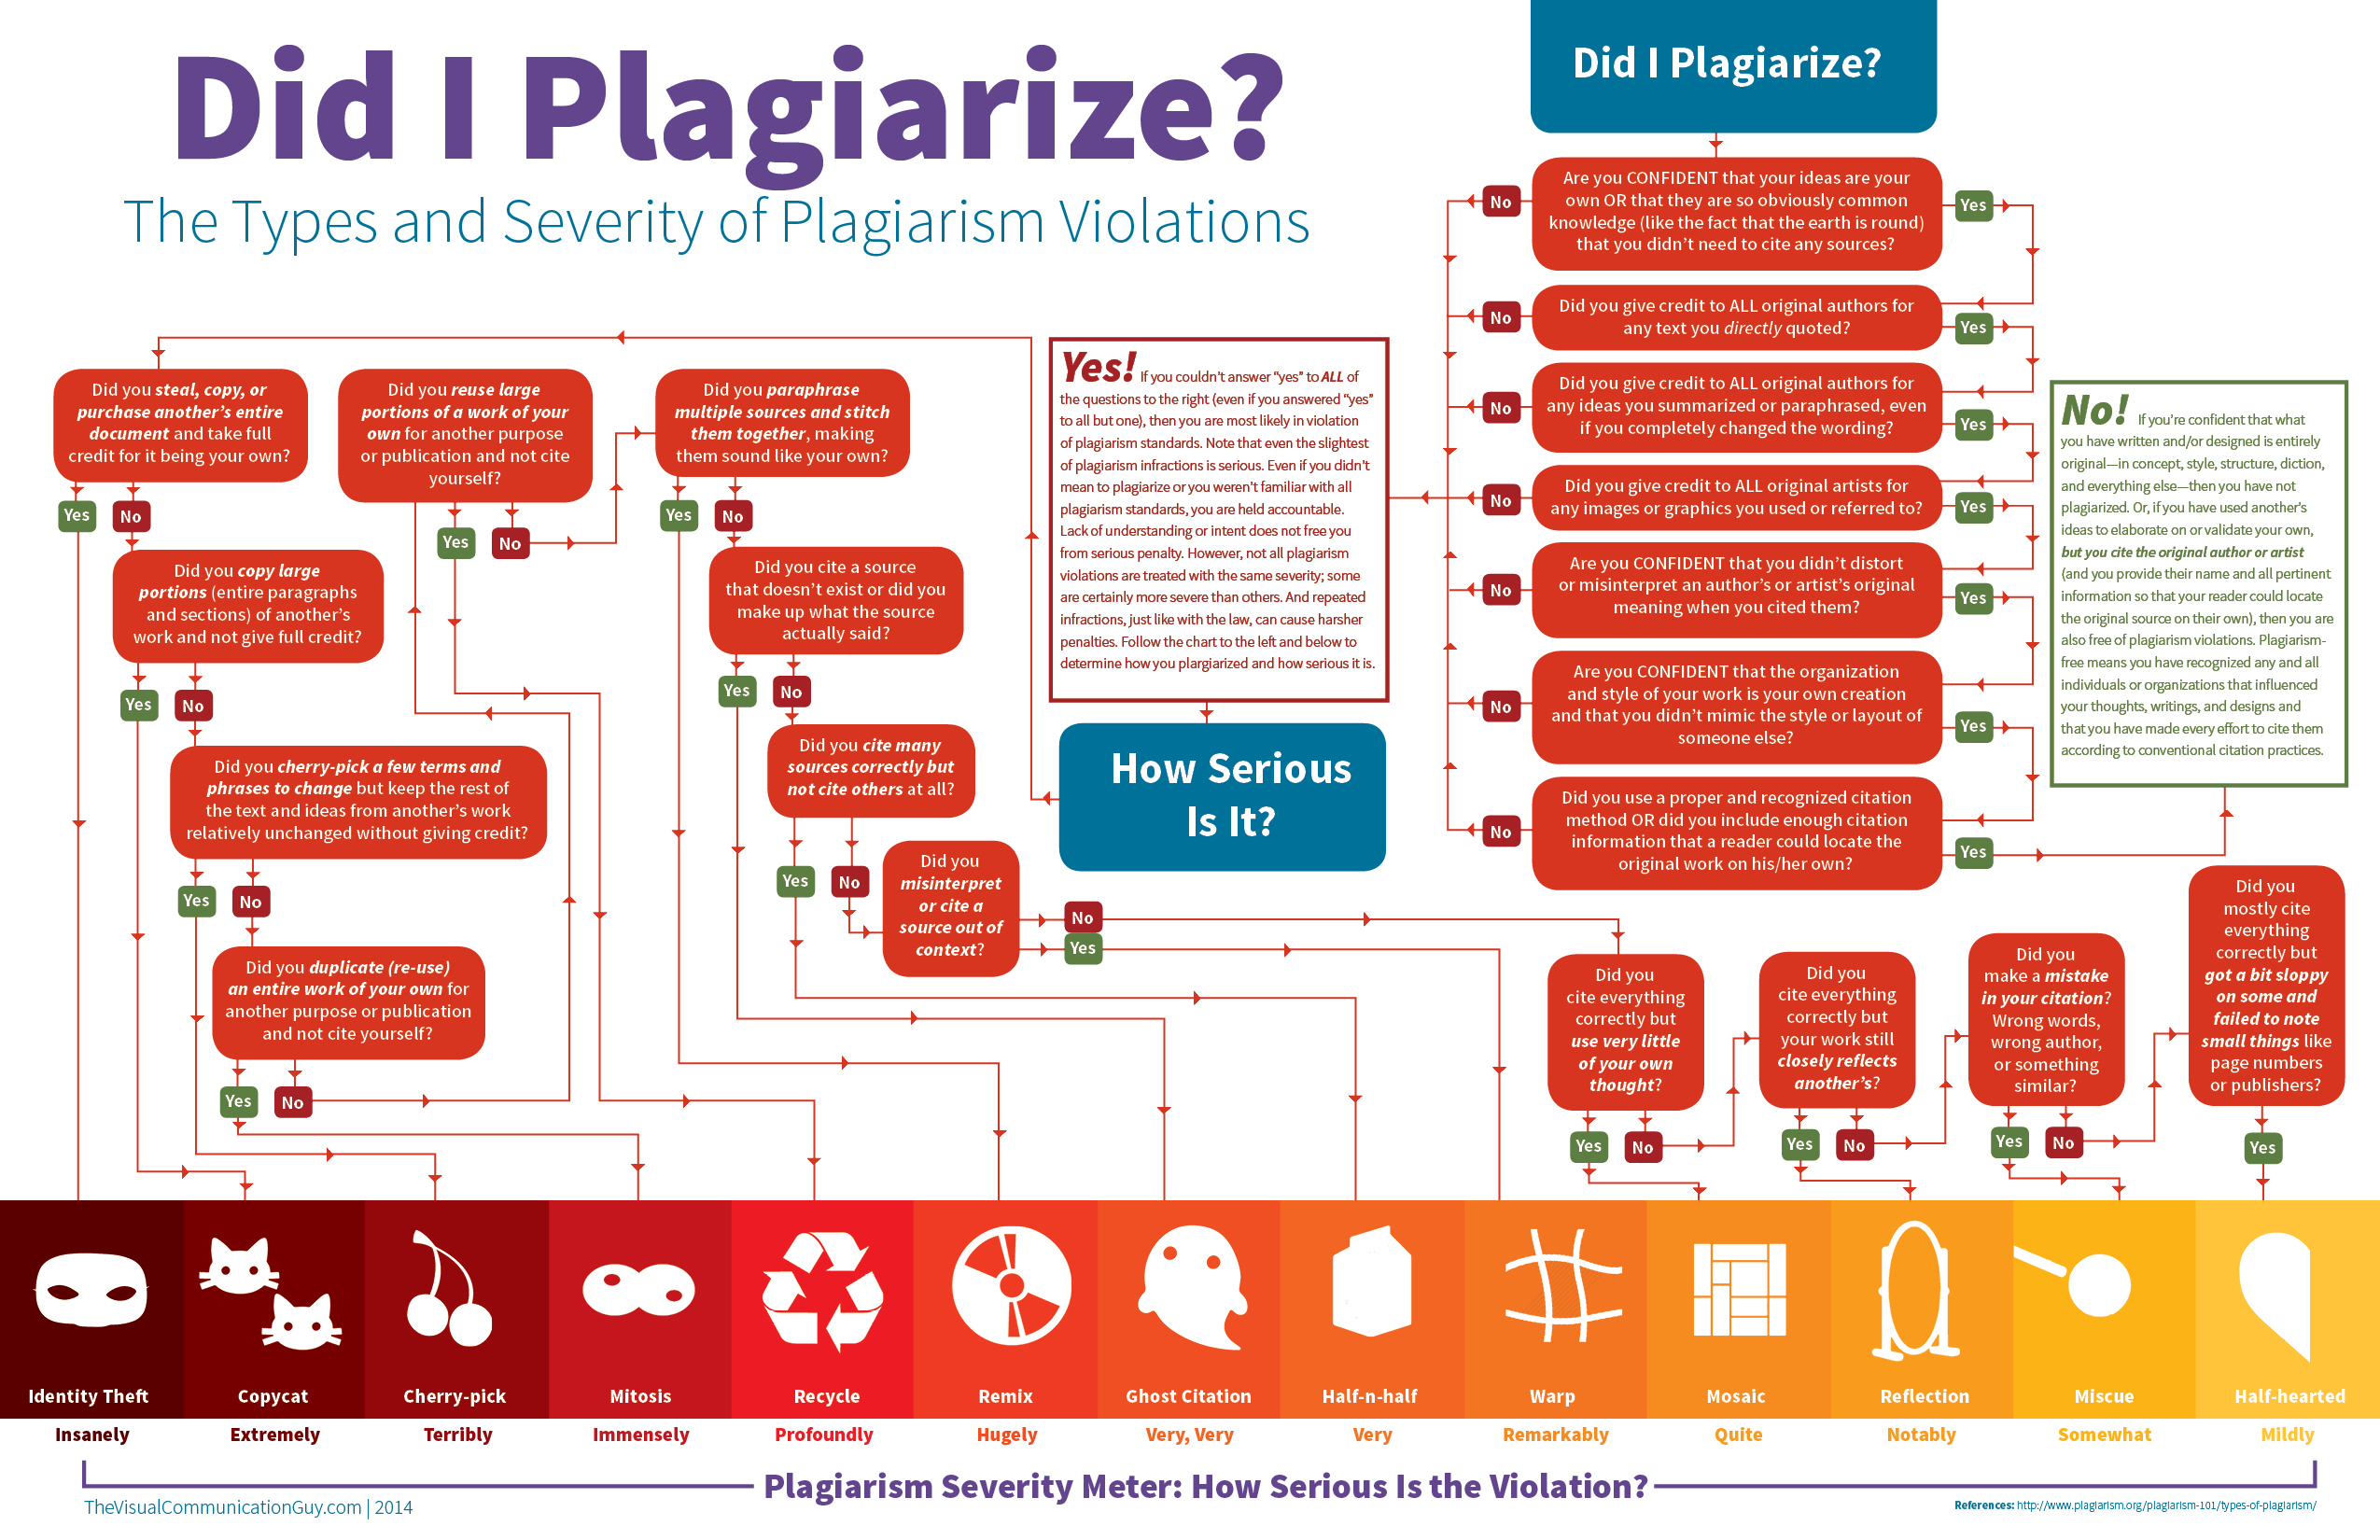 Question about plagiarizing?